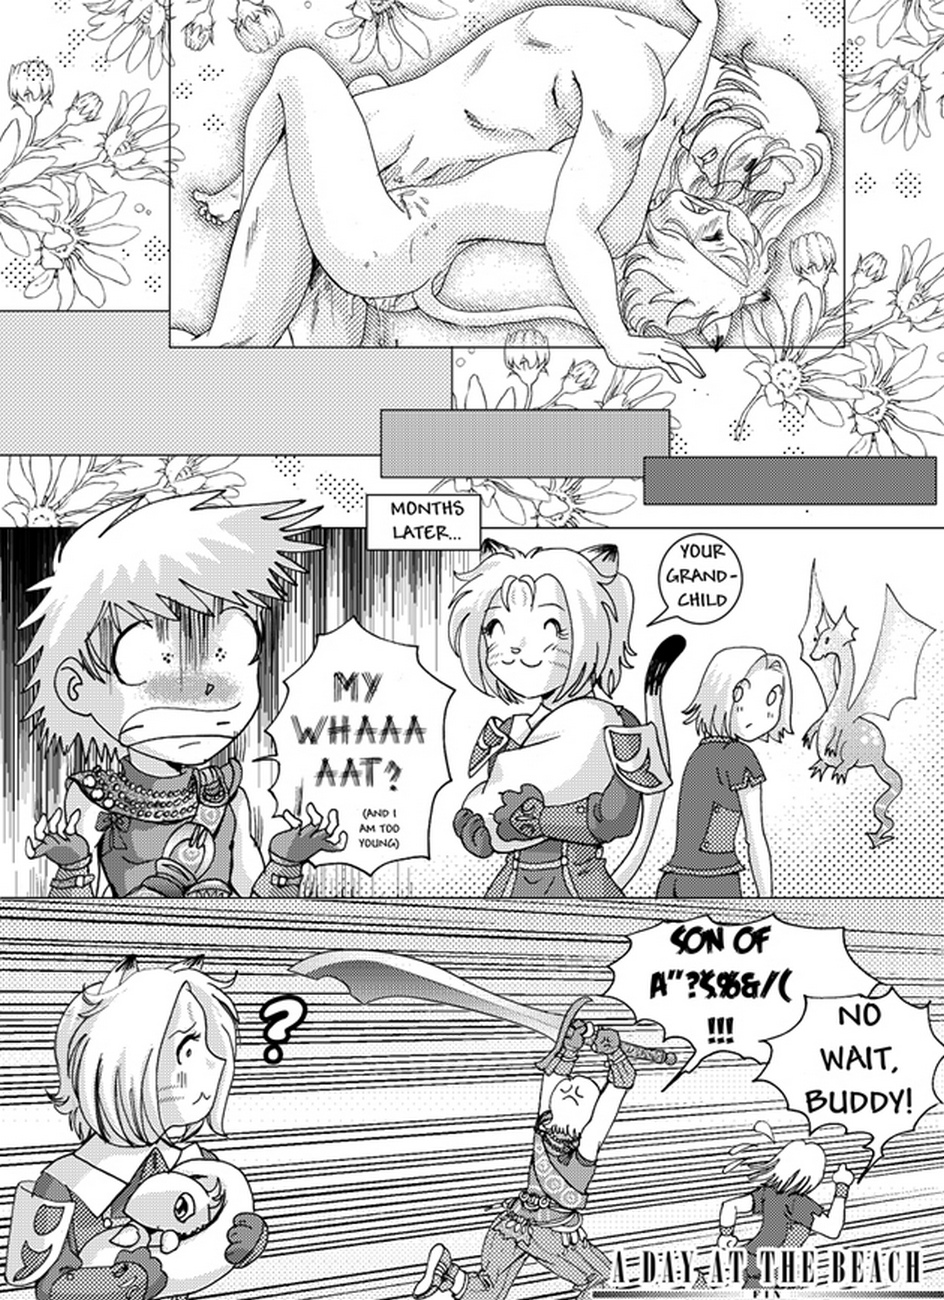 A-Day-At-The-Beach-Final-Fantasy 11 free sex comic